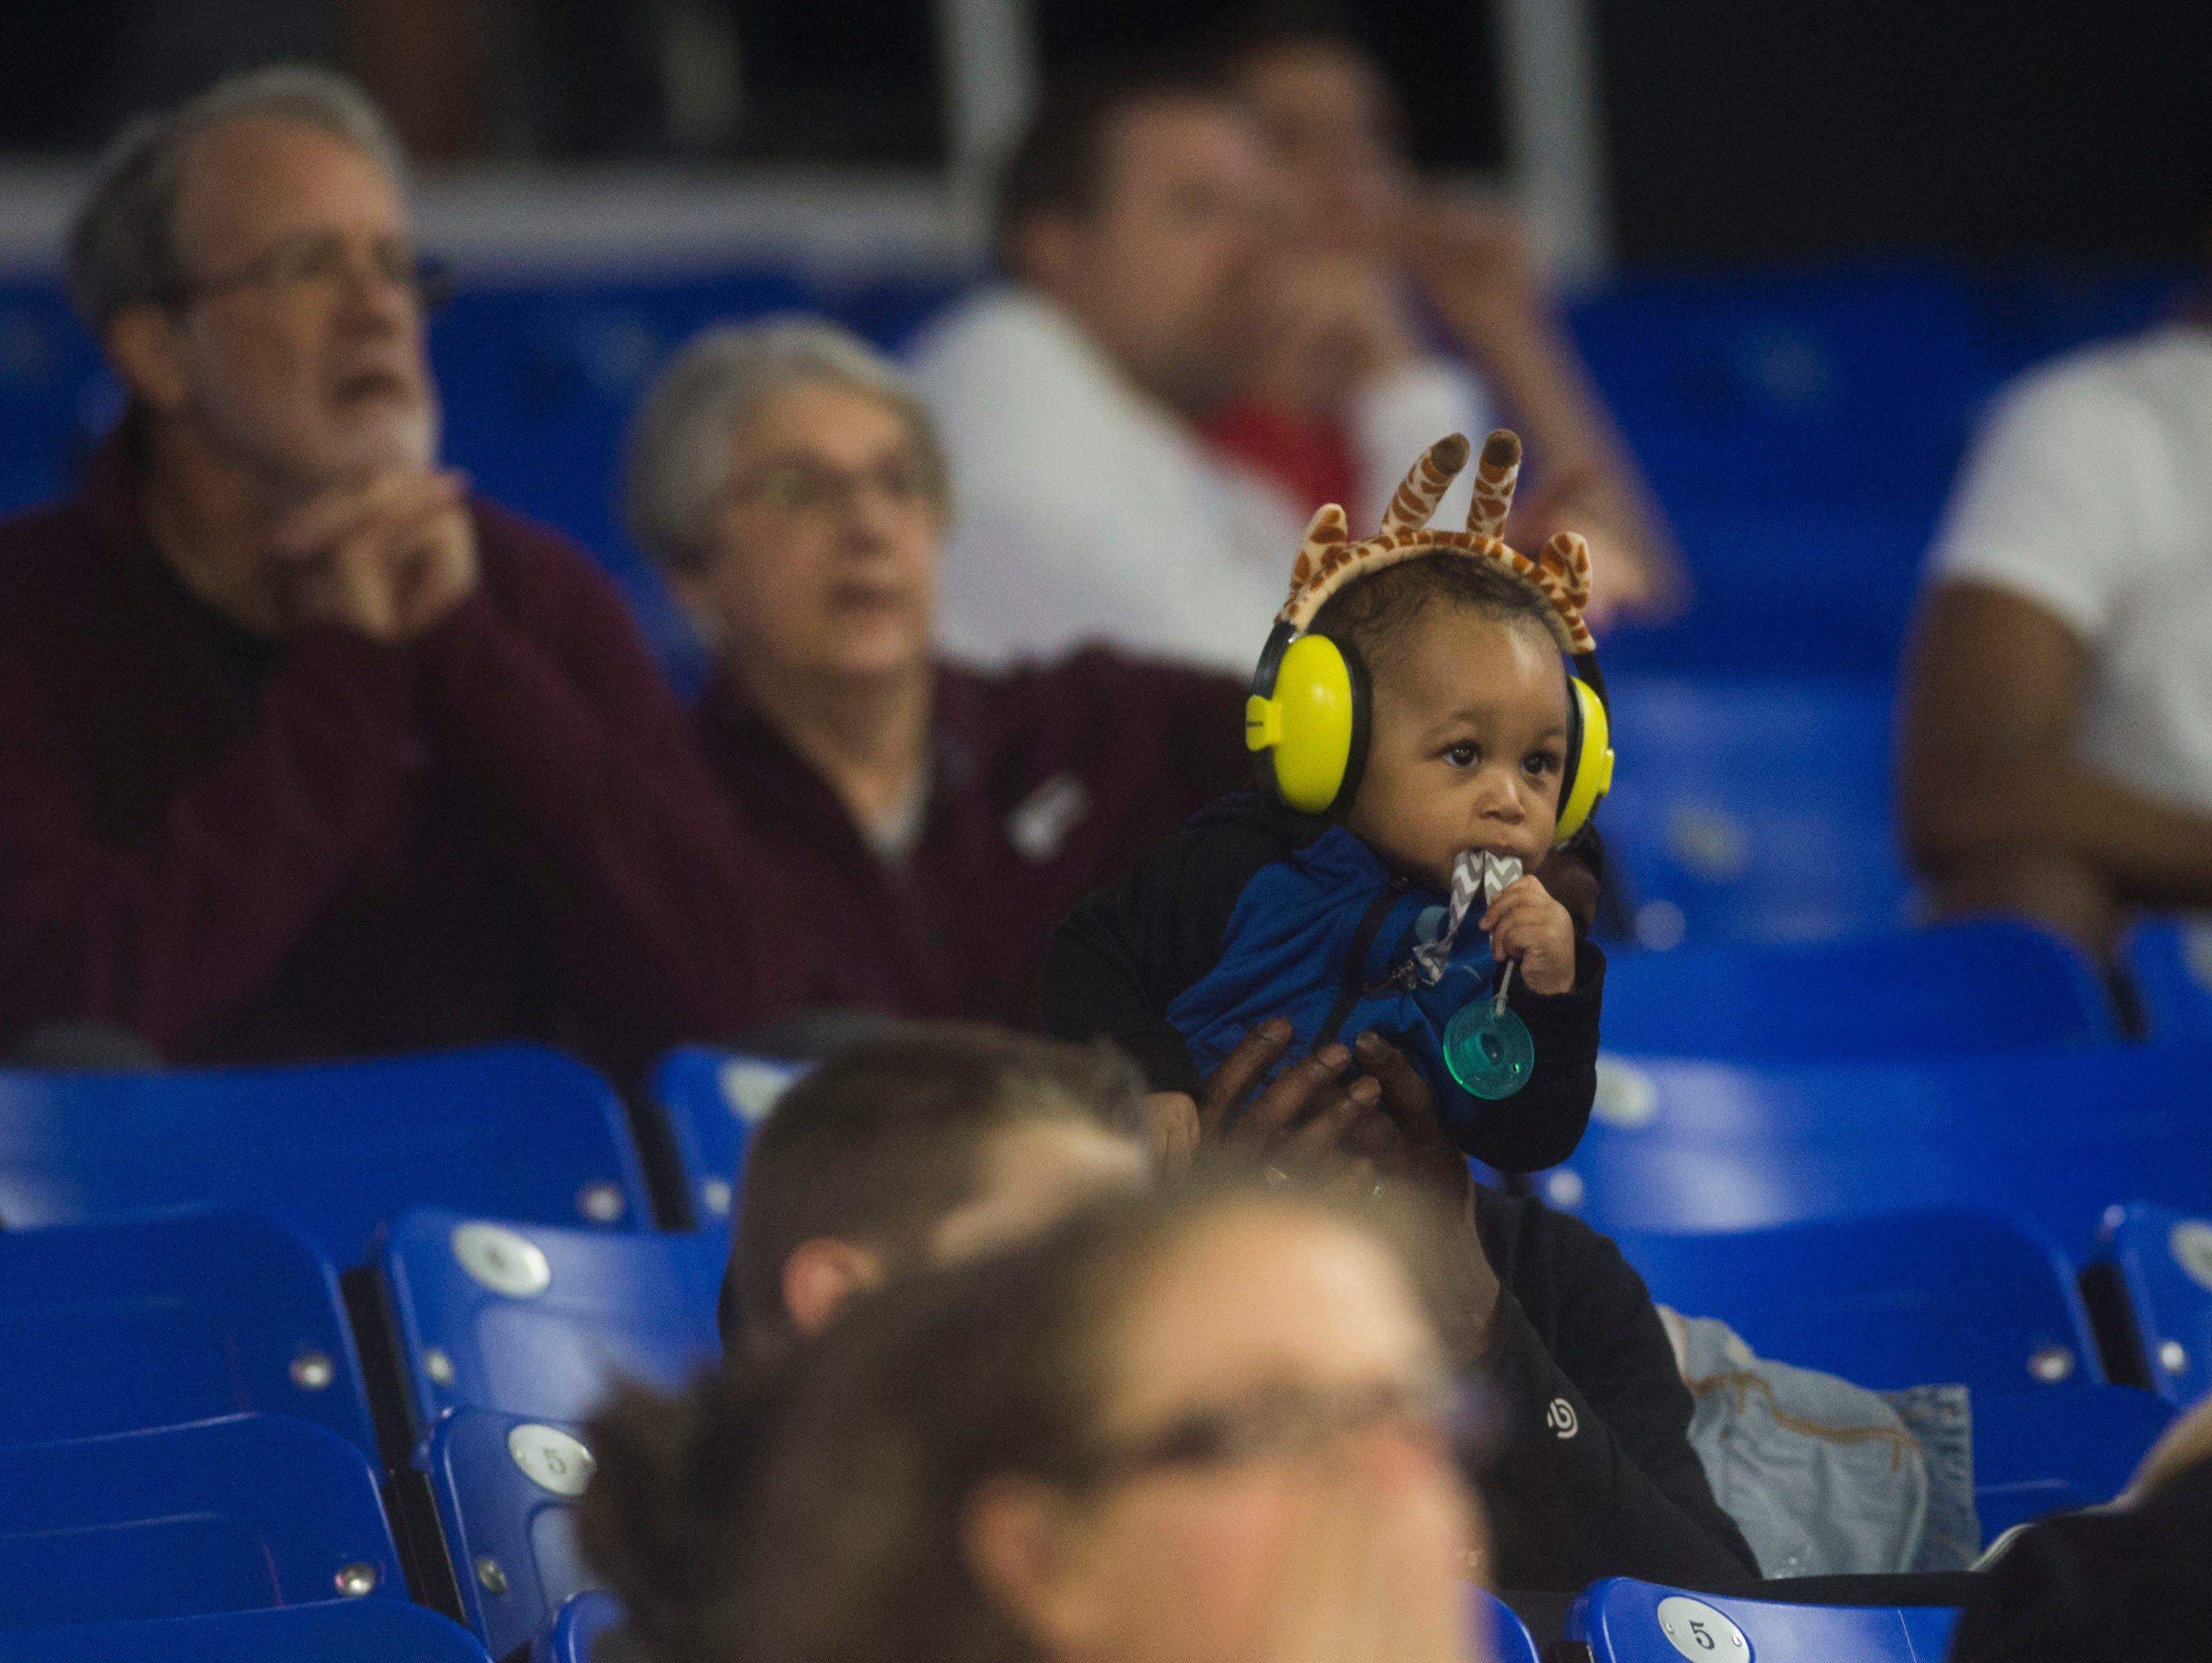 A young Fulton fan watches on during a TSSAA AA state semifinal game between East Nashville and Fulton at the Murphy Center in Murfreesboro, Friday, March 15, 2019. Fulton defeated East Nashville 66-55.